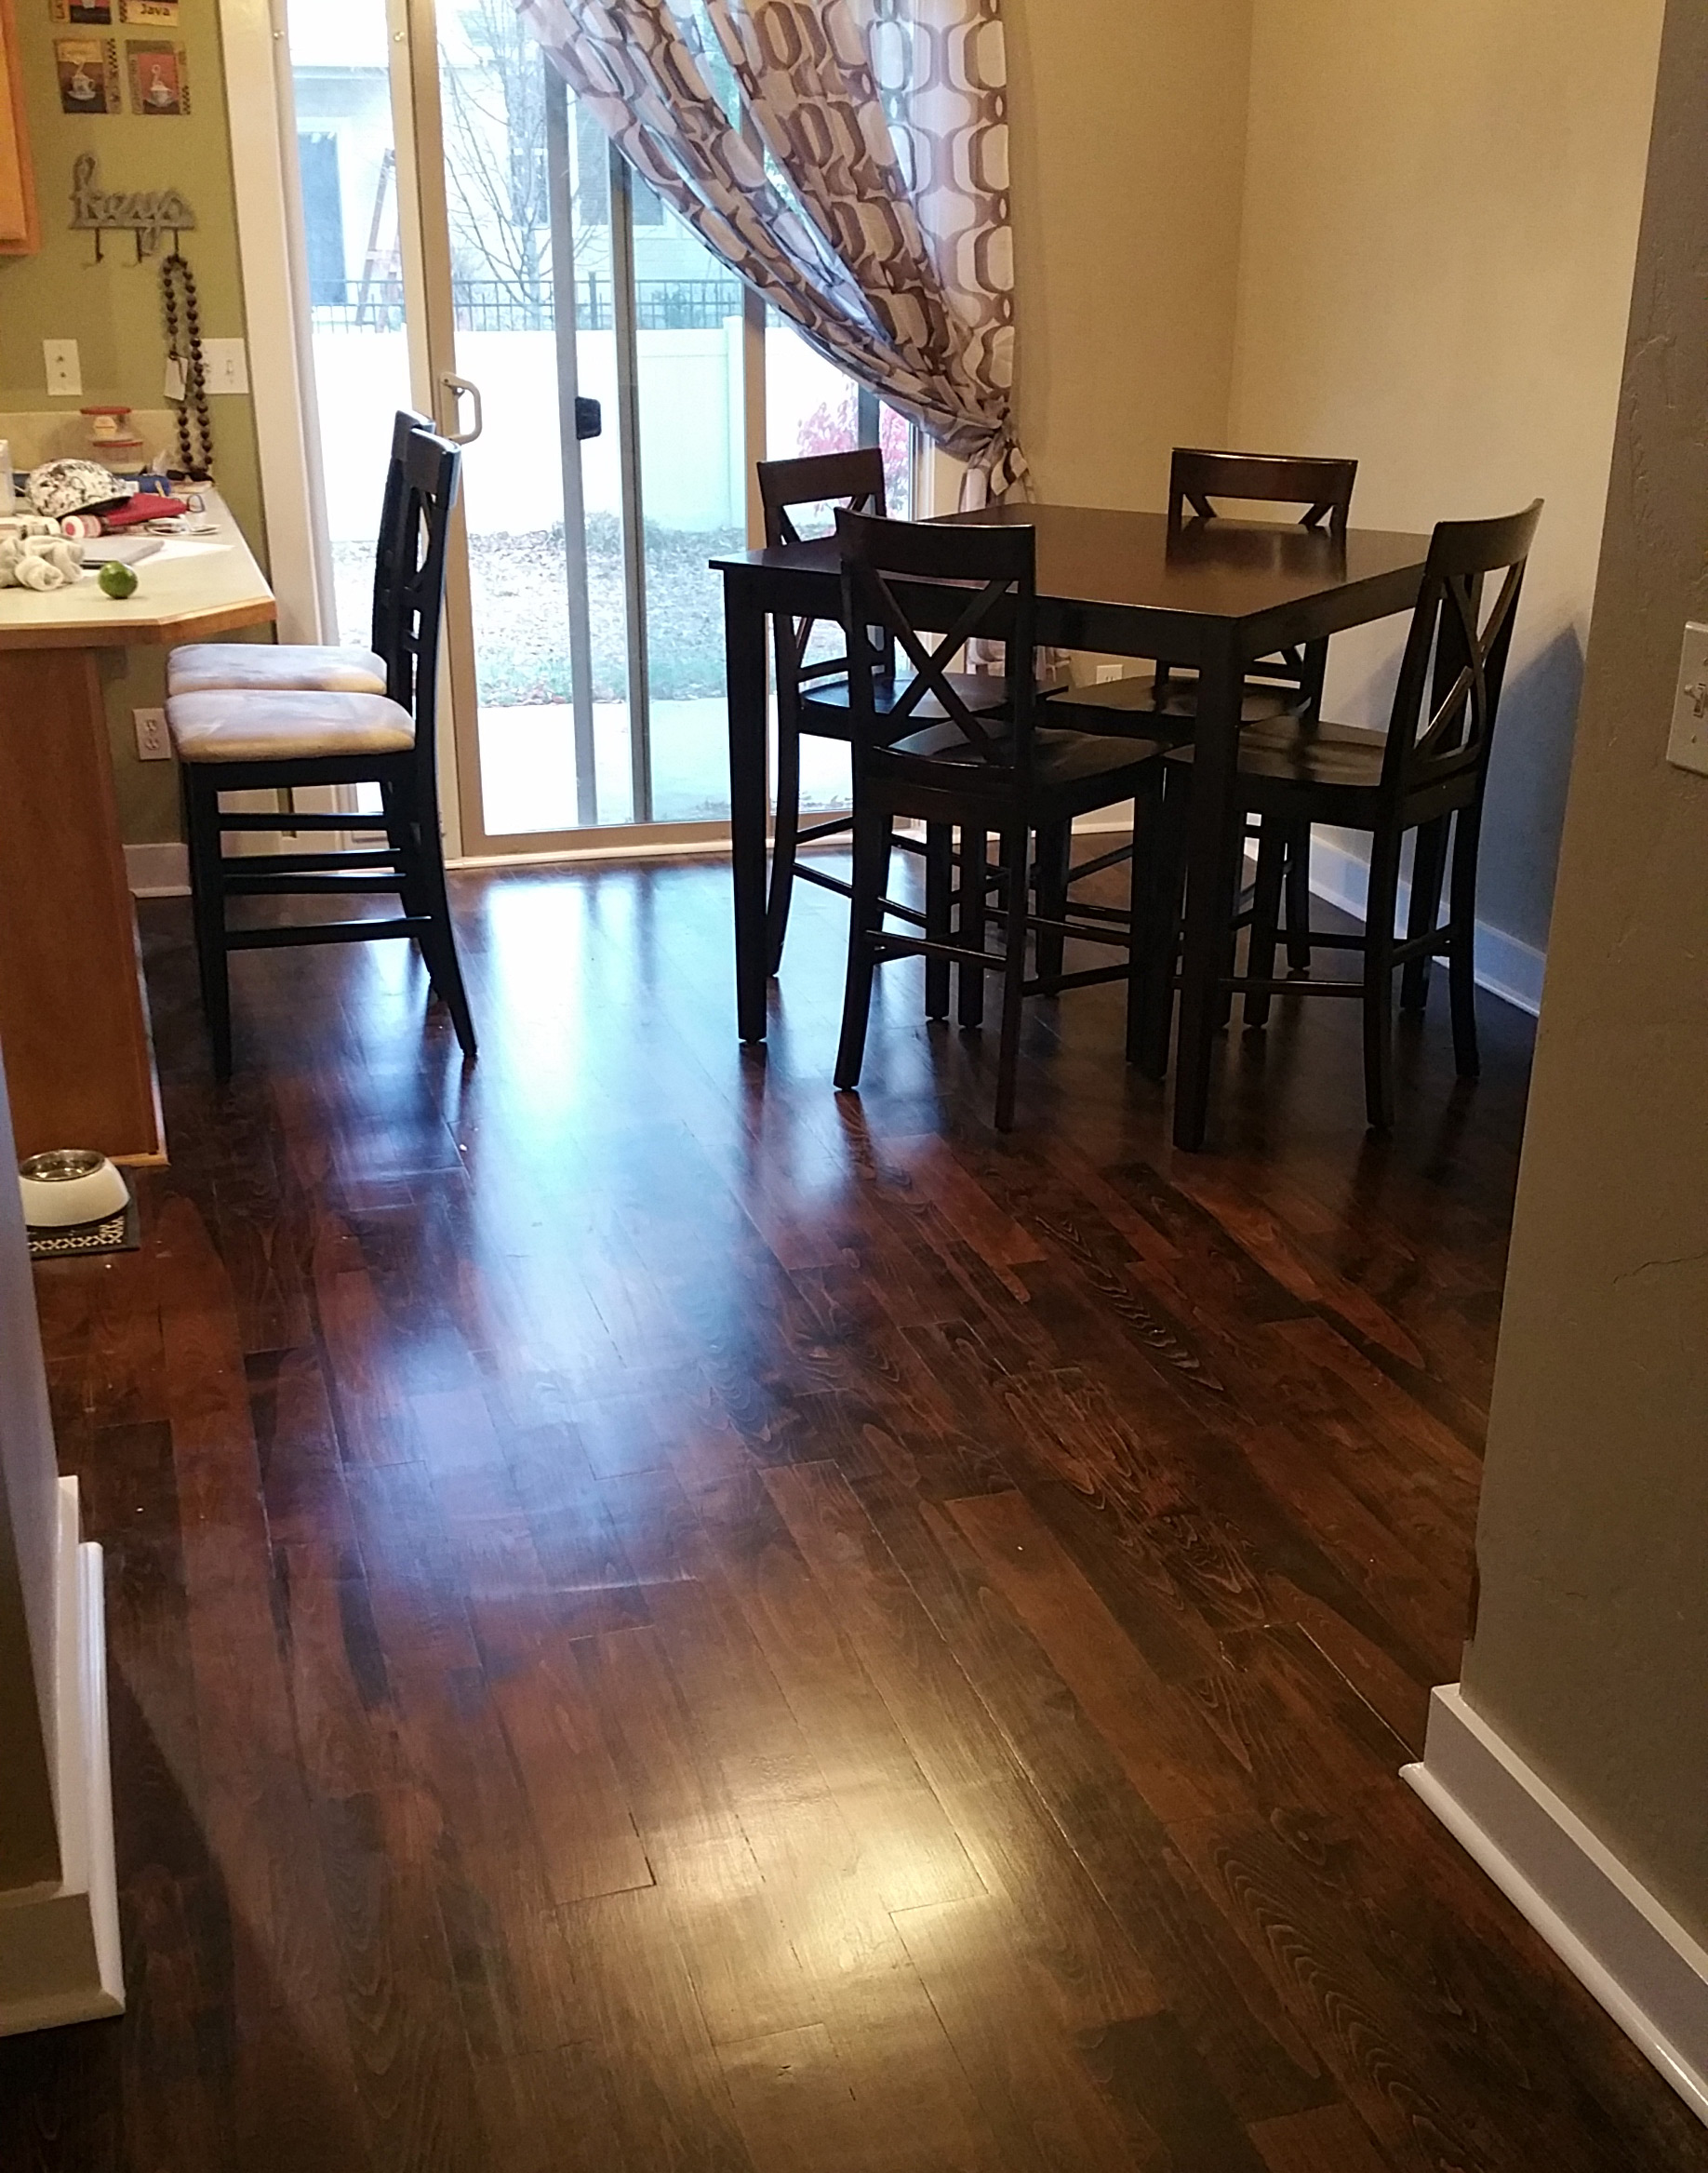 Picture of finished hardwood floors